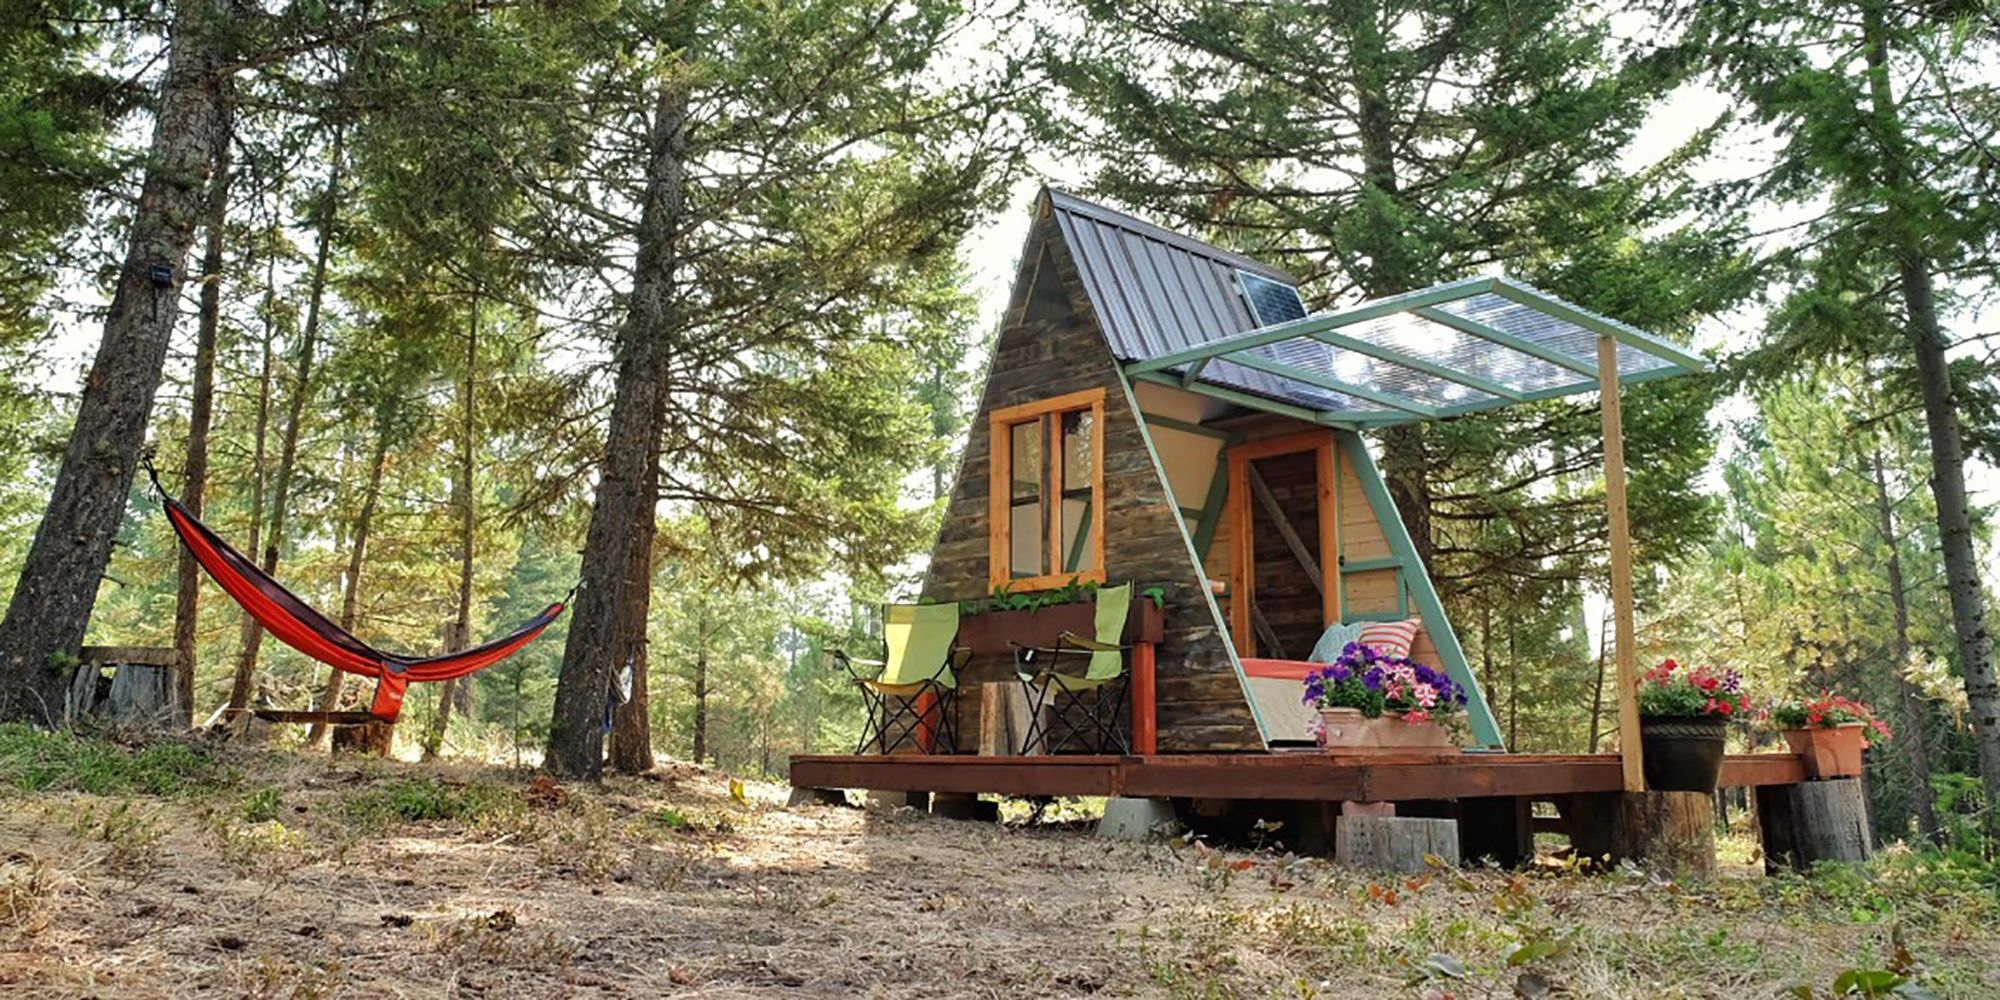 This Couple Built A Tiny A-Frame Home For Only $700